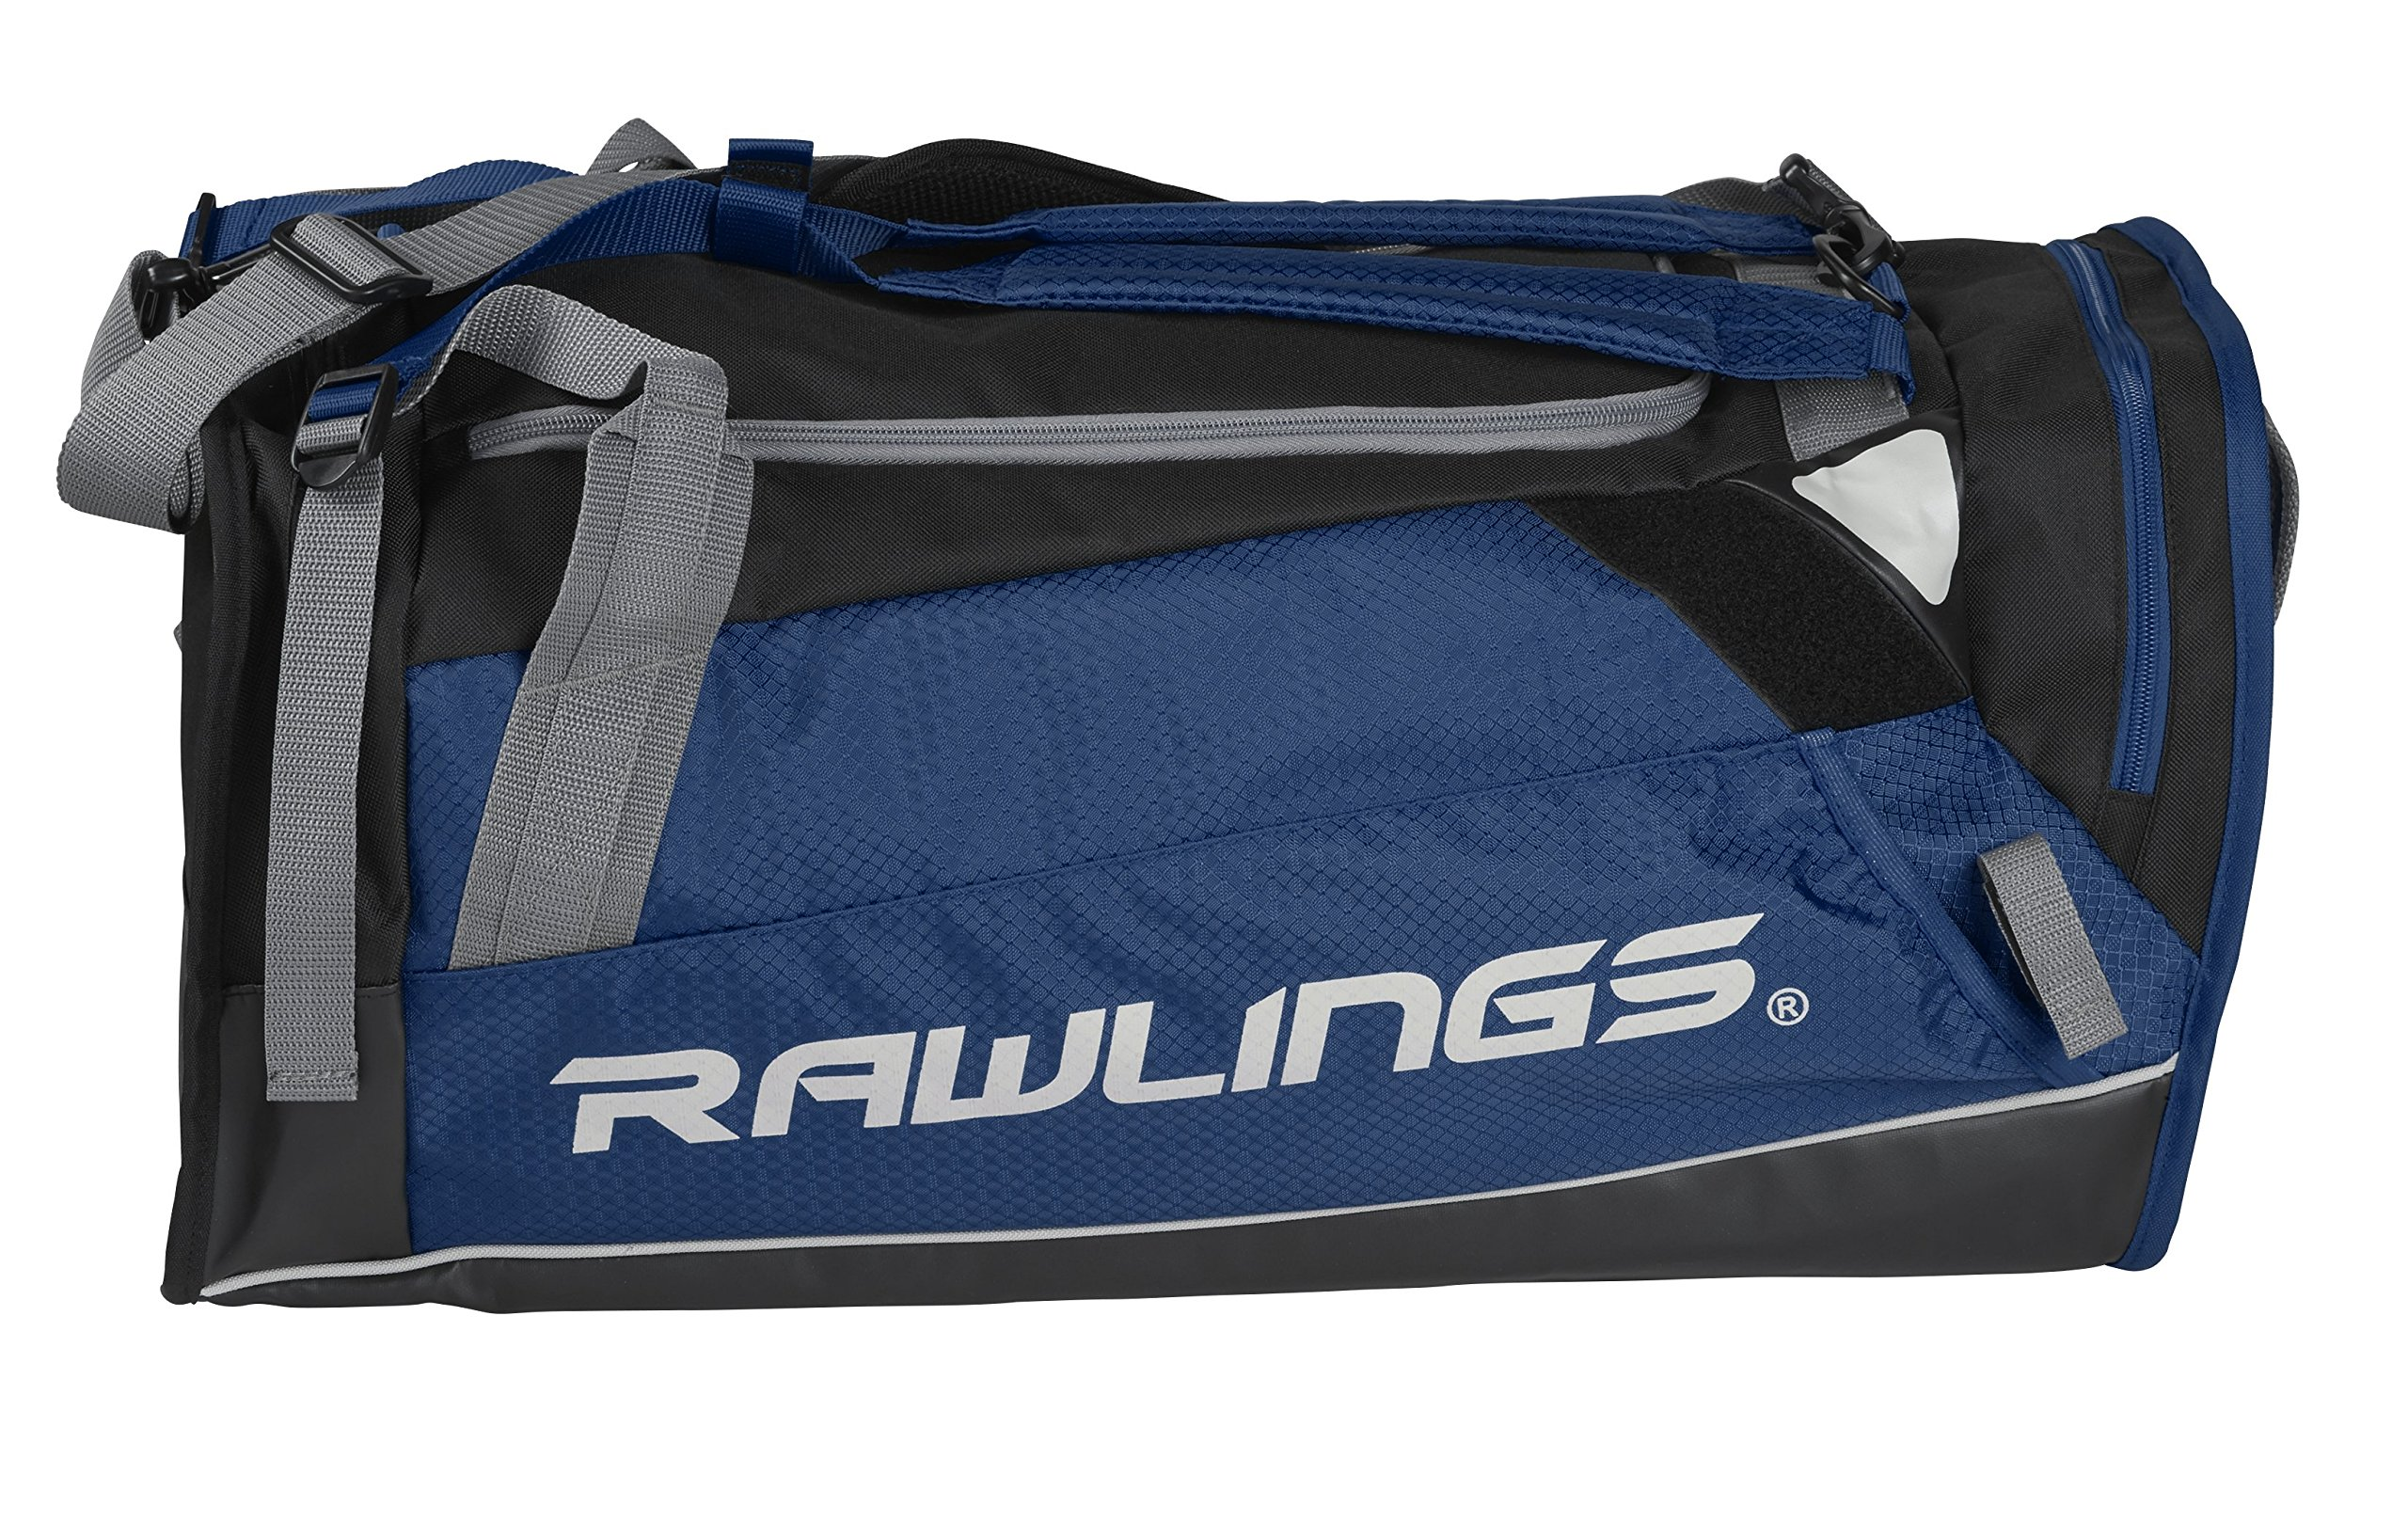 RAWLINGS Hybrid Duffel/Backpack Baseball/Softball Bag, Navy by RAWLINGS